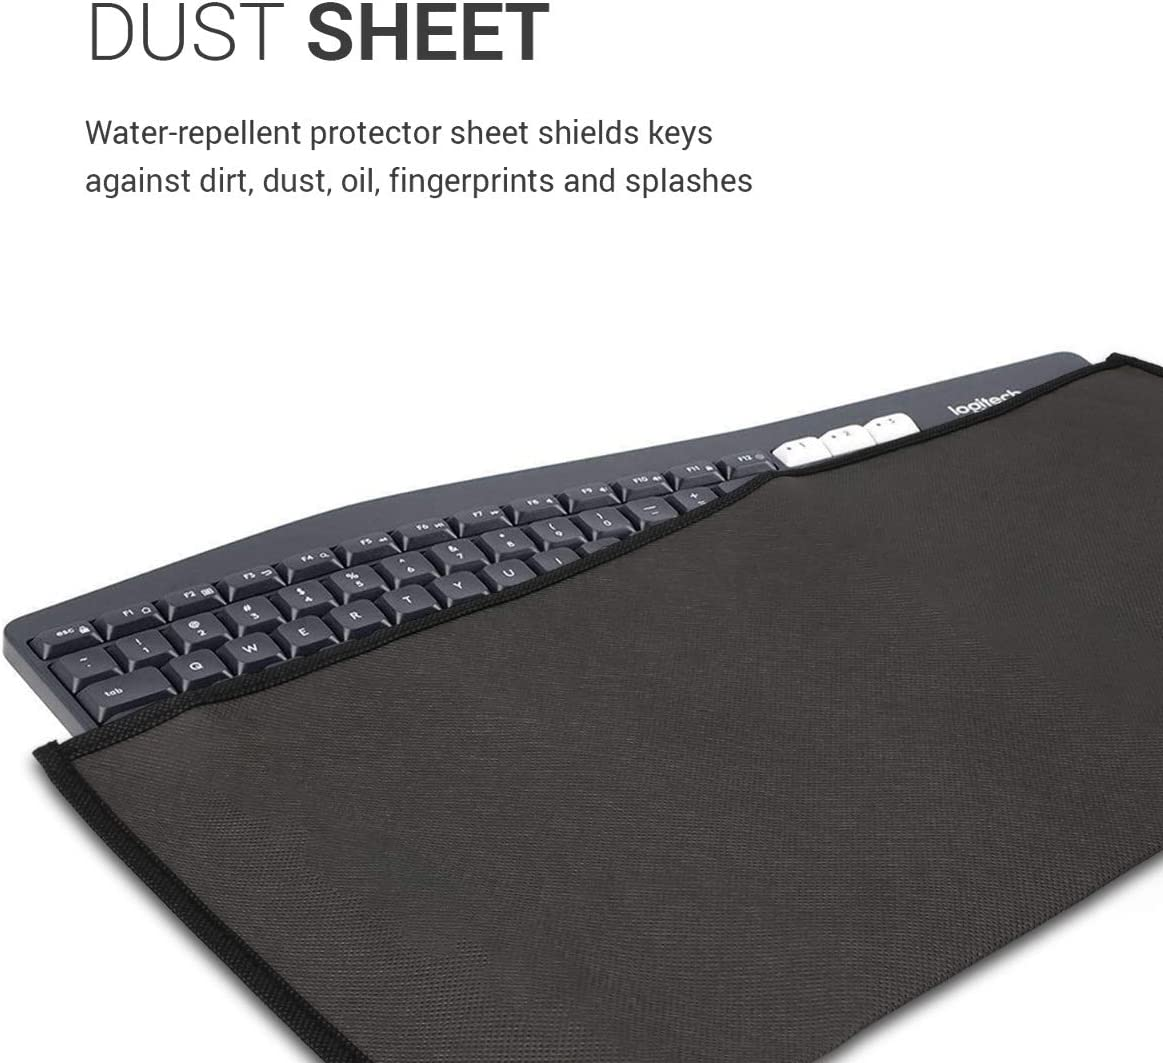 kwmobile Keyboard Cover Compatible with Universal Keyboard Dark Grey Protective Skin Computer Keyboard Dust Cover Case